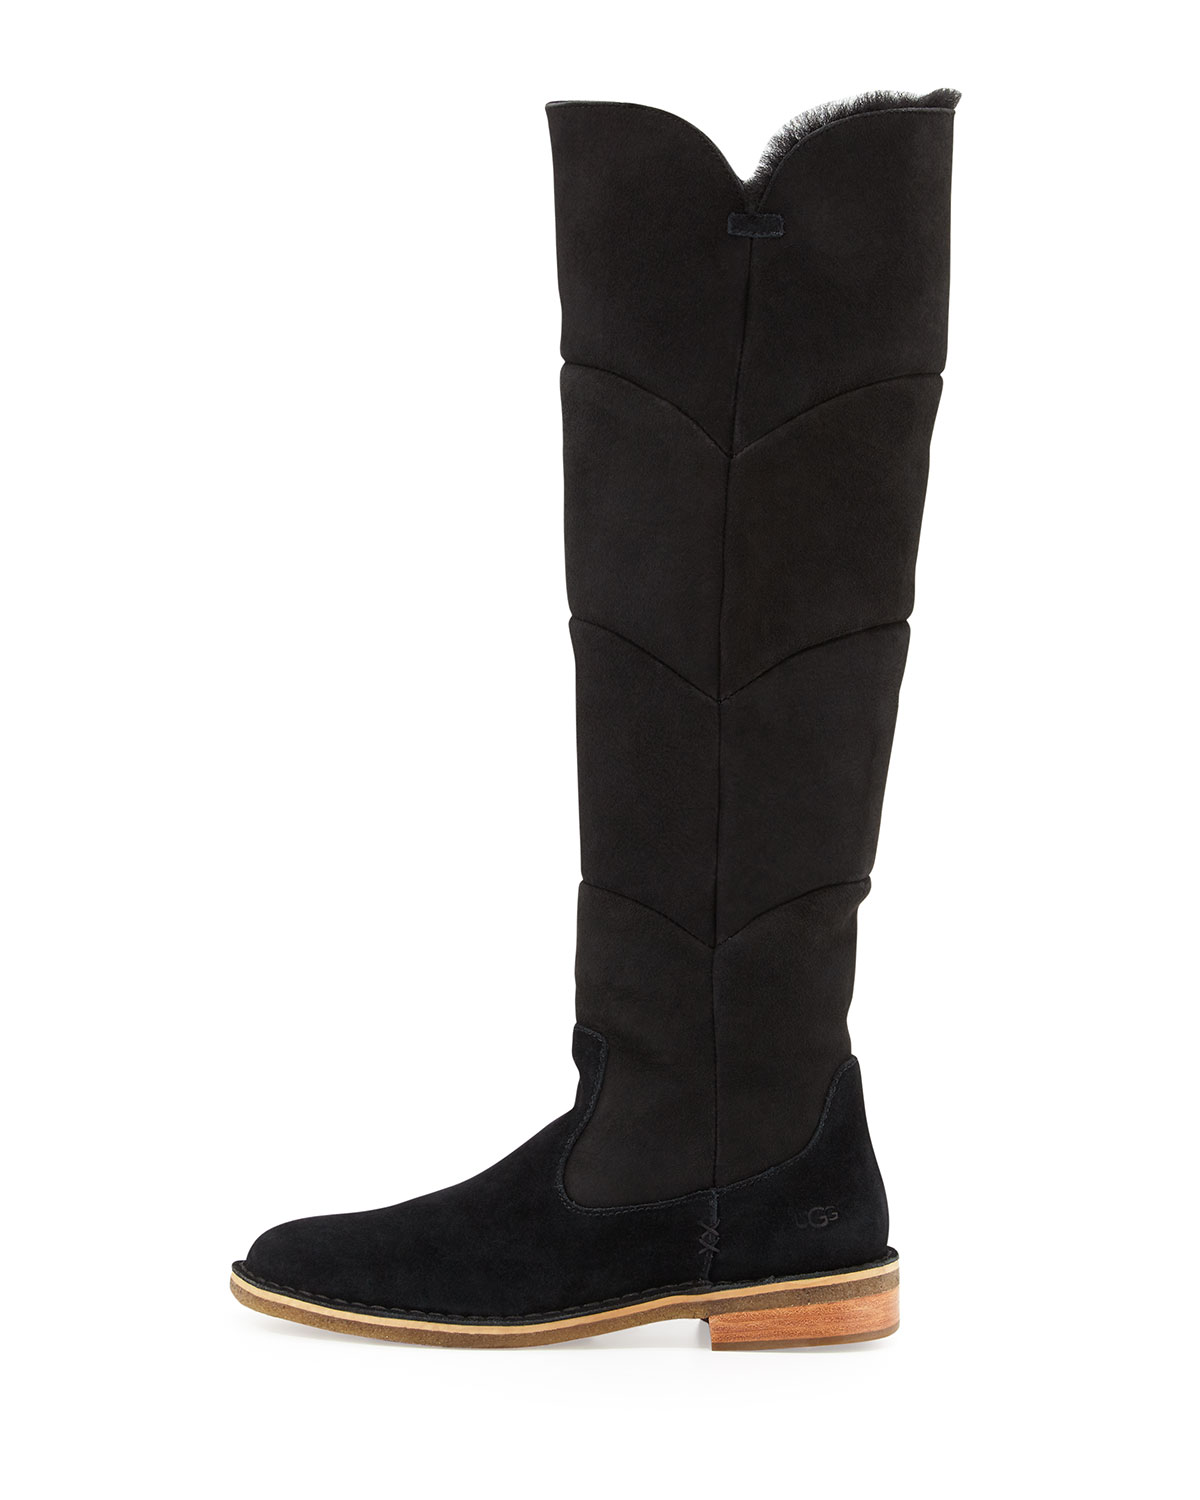 6e51c54cbff Samantha Quilted Tall Boot, Black